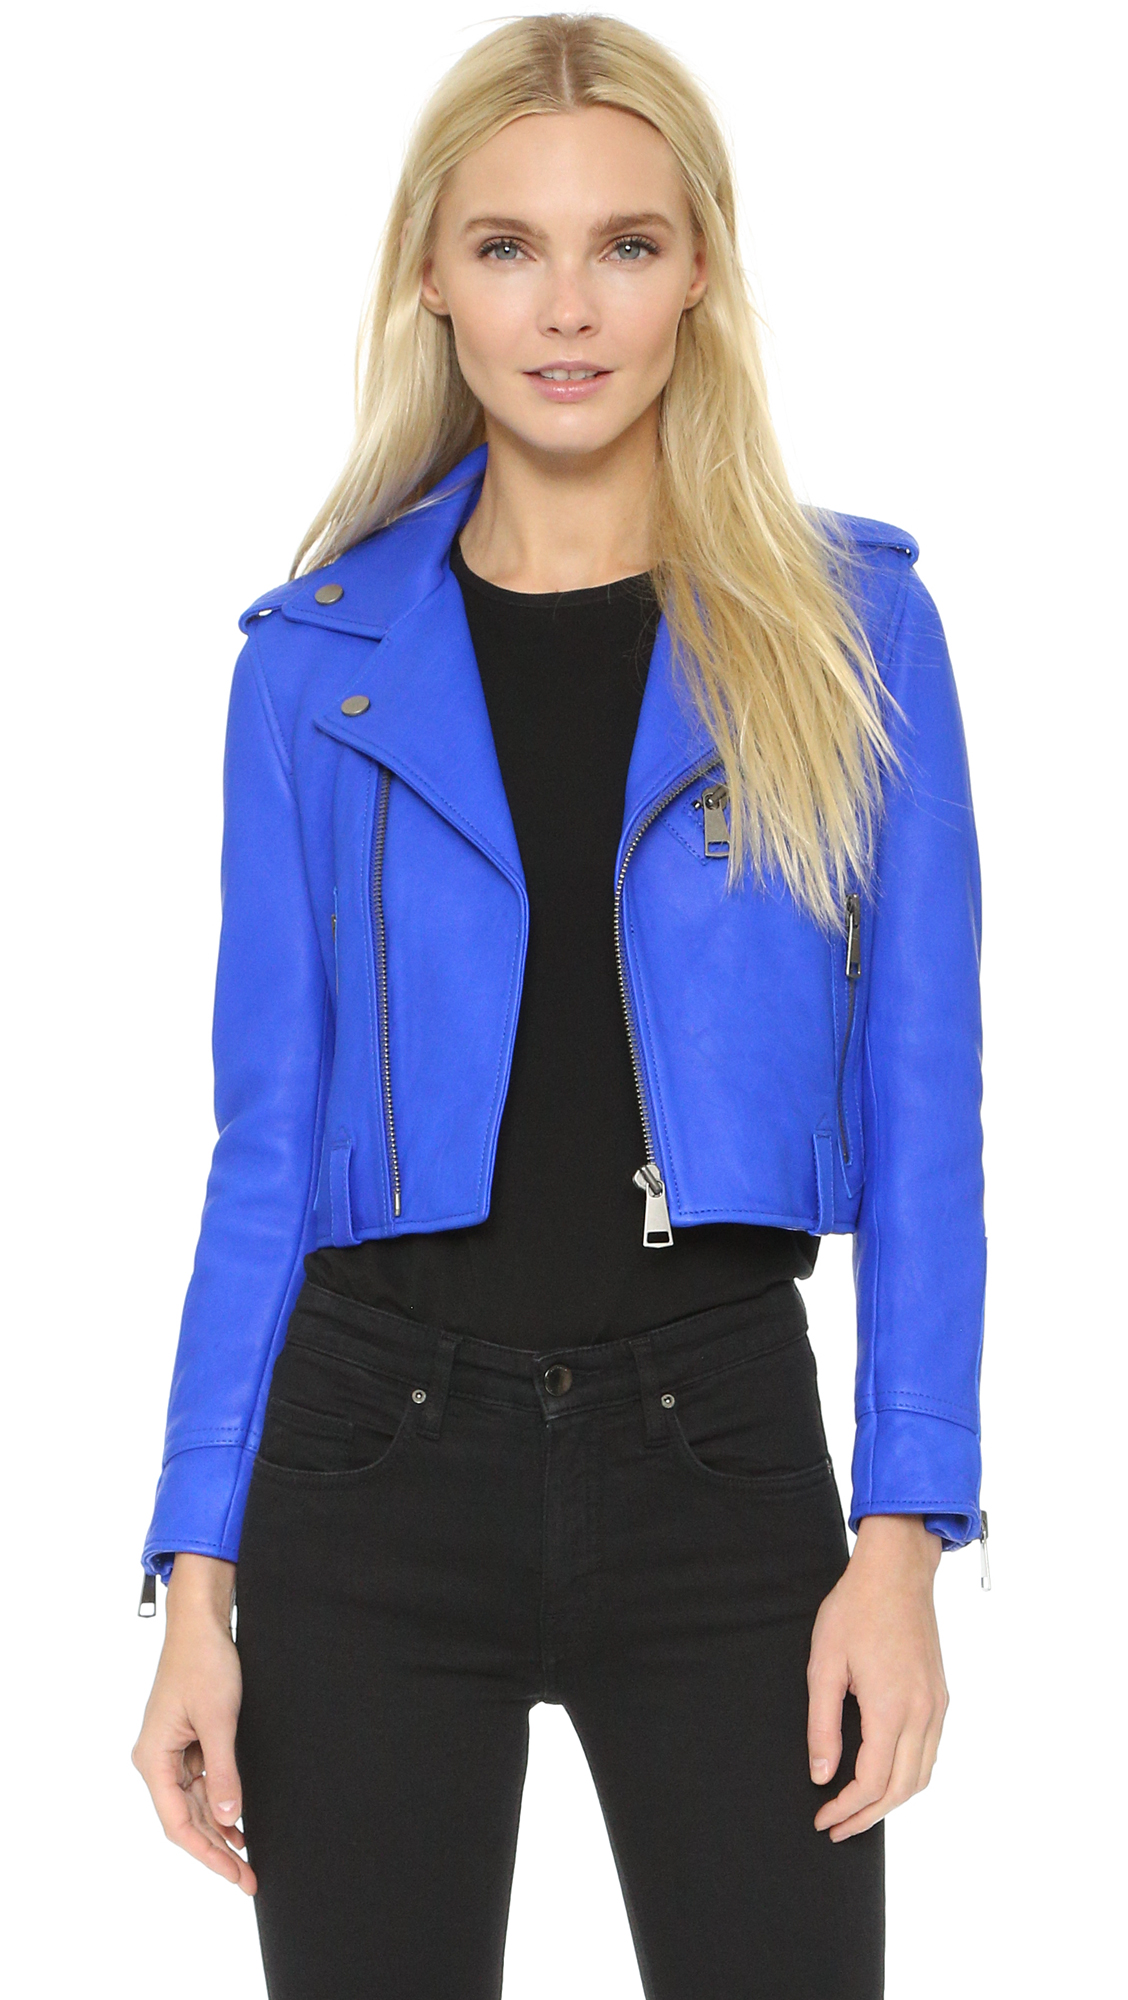 Leather jacket victoria - Victoria Victoria Beckham Classic Biker Jacket 15 Off First App Purchase With Code 15foryou